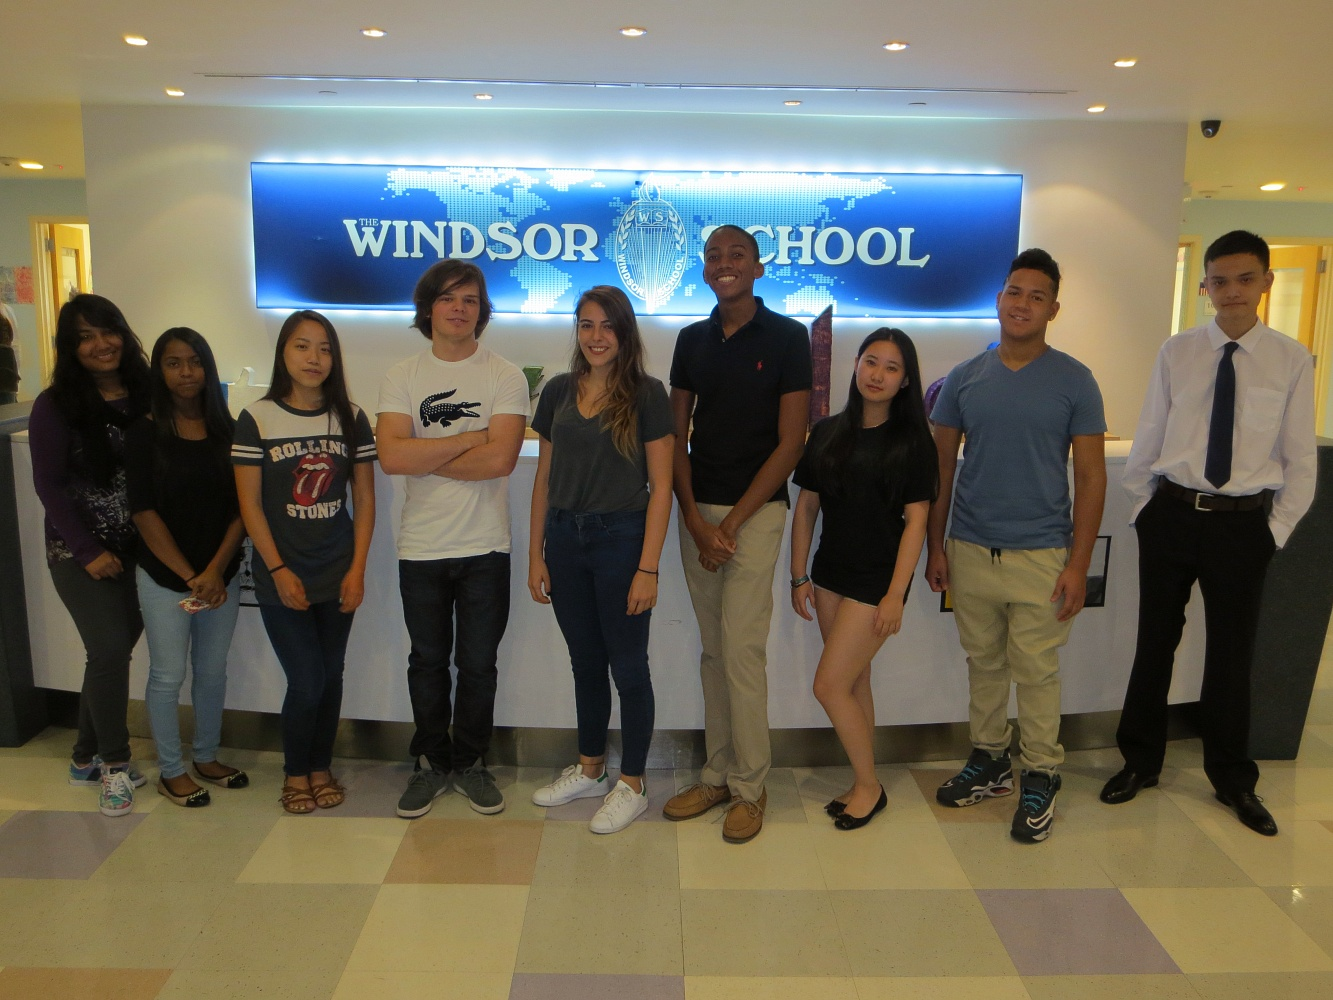 The Windsor School